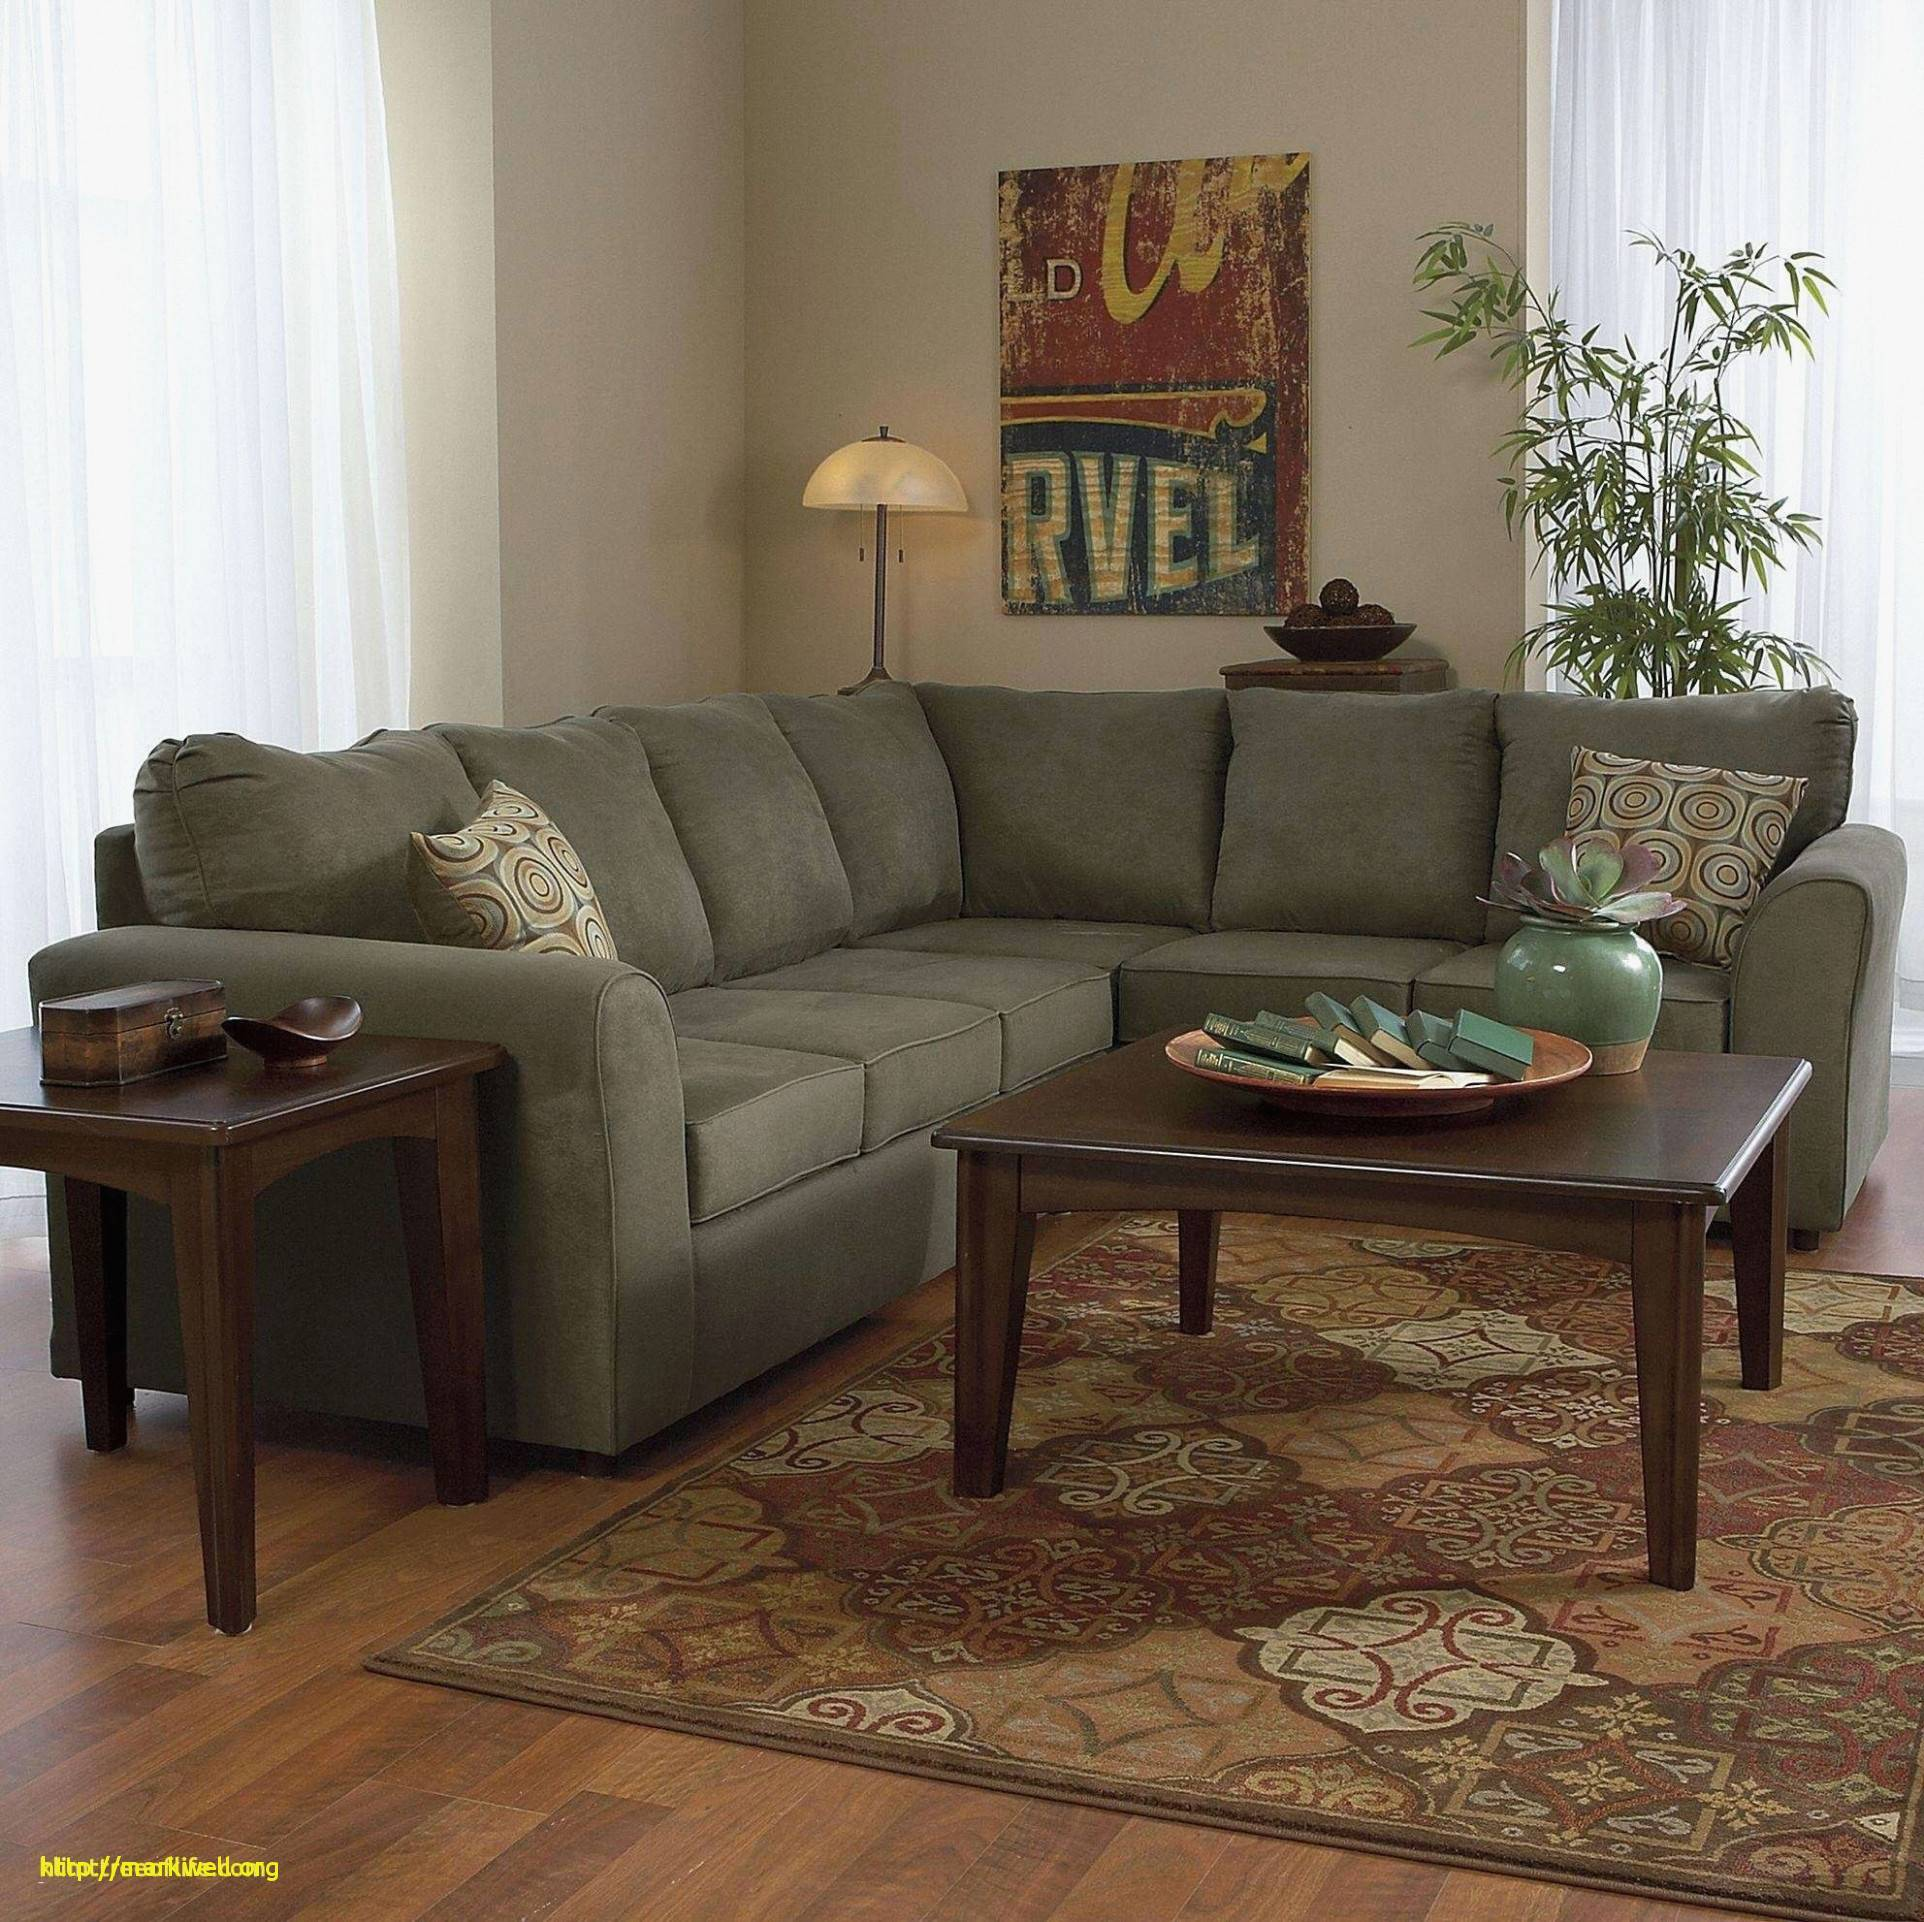 living room accent furniture best of design your bedroom new top best living room accent furniture 0d of living room accent furniture